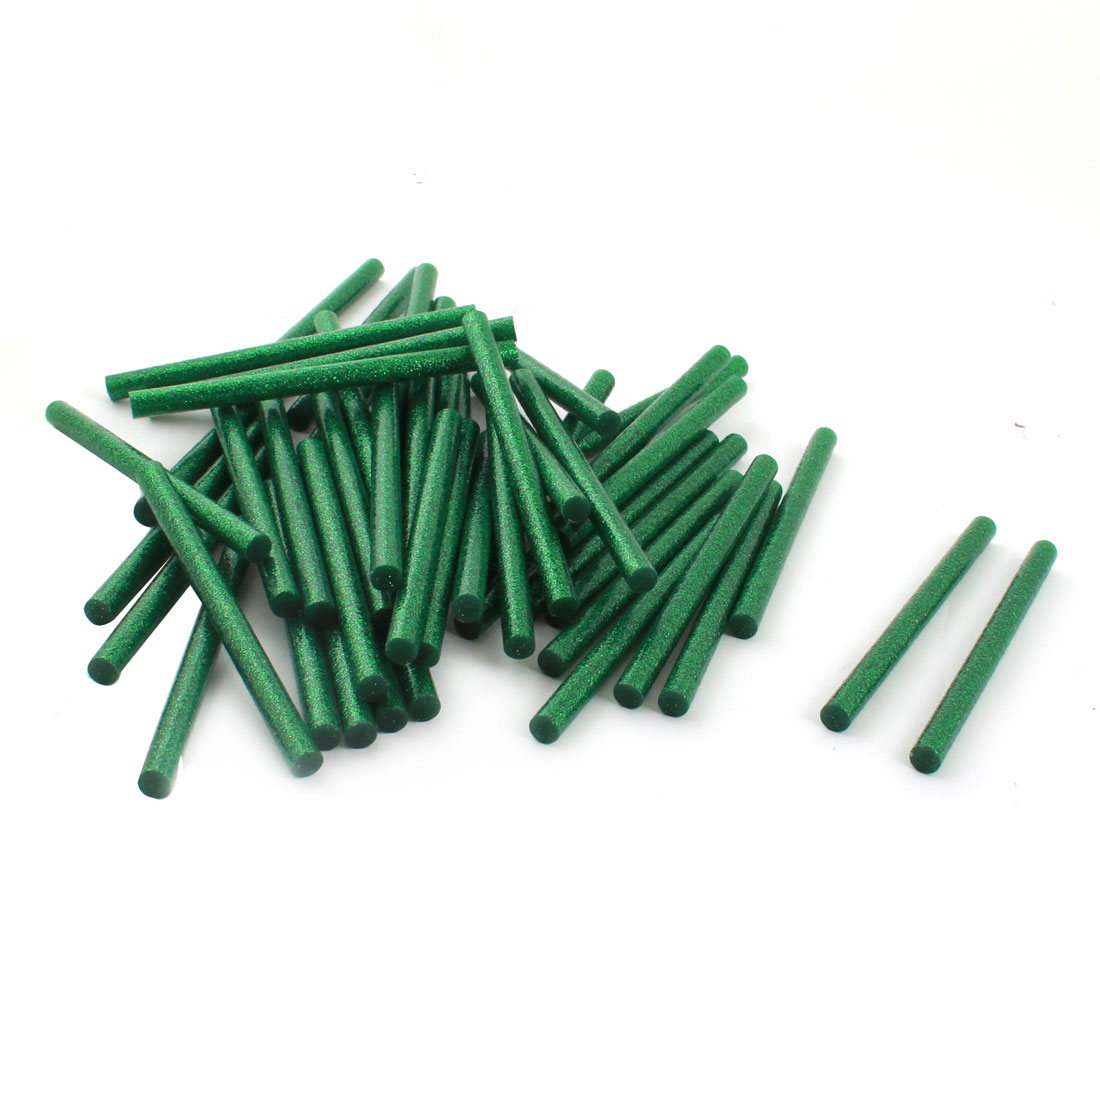 50 Pcs 7mm x 100mm Dark Green Glitter Electric Tool Hot Melt Gun Glue Adhesive Stick